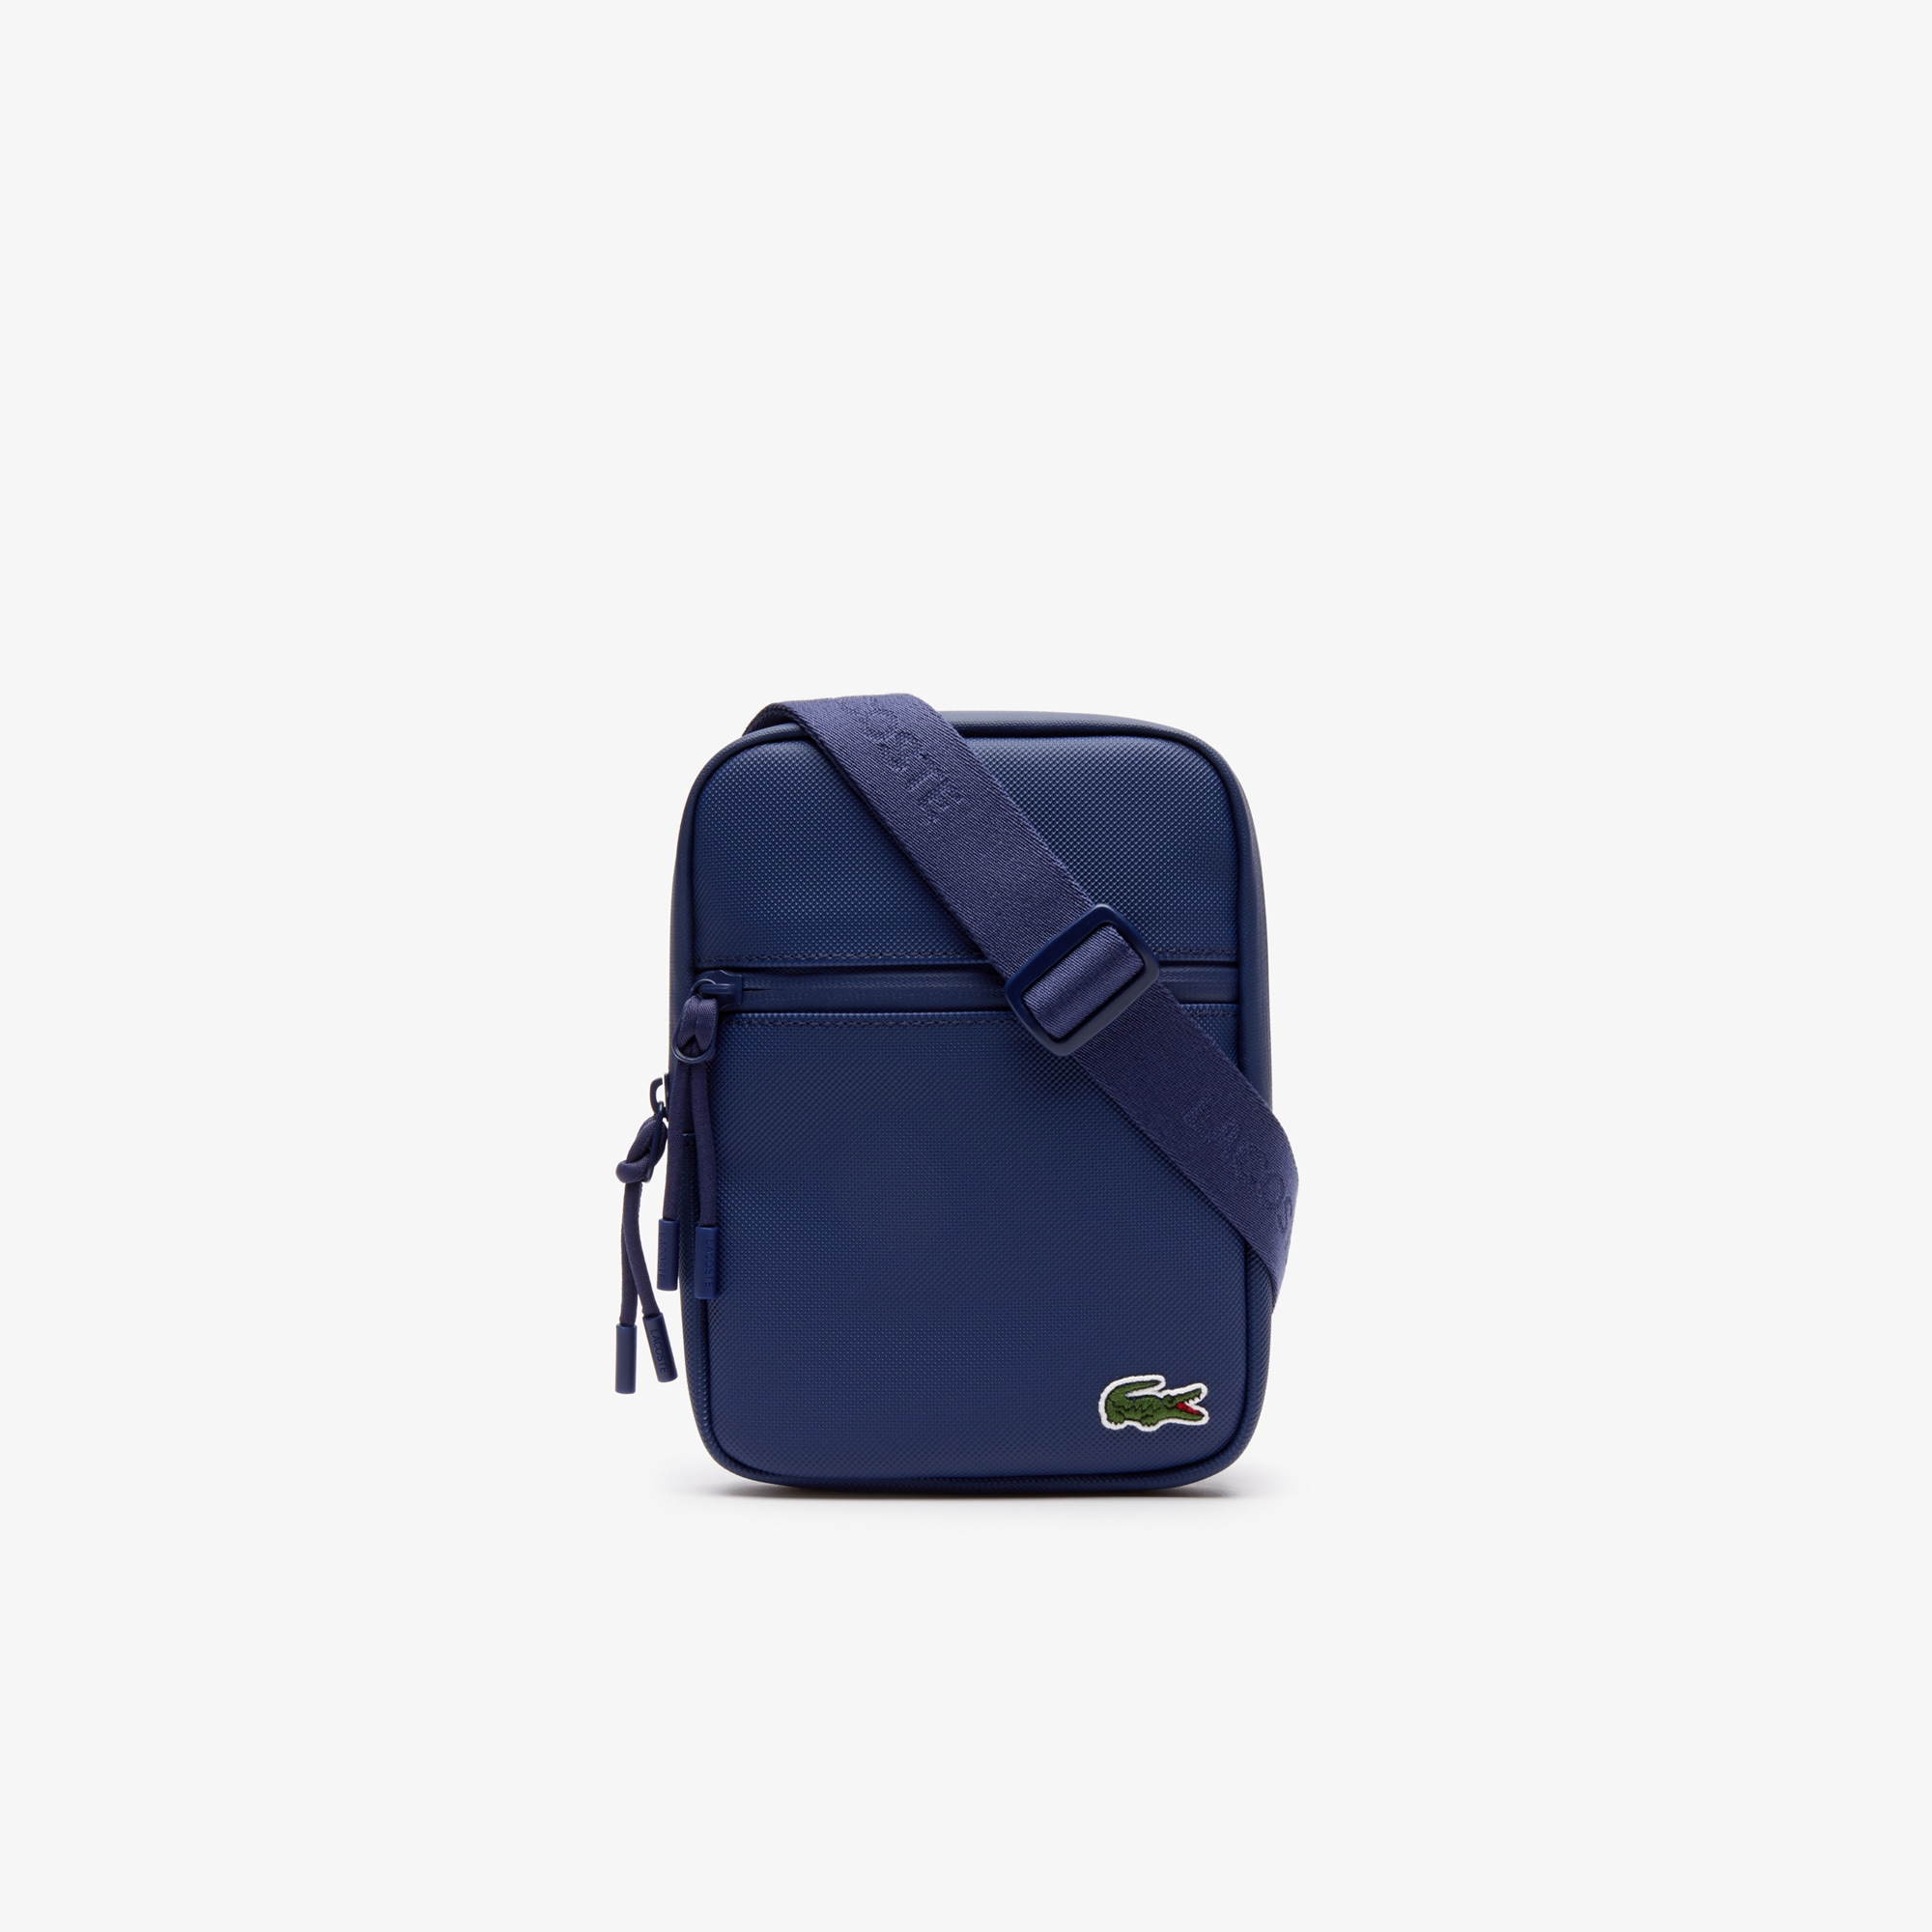 6f648a6c527dc Backpacks & Bags for men | Leather goods | LACOSTE